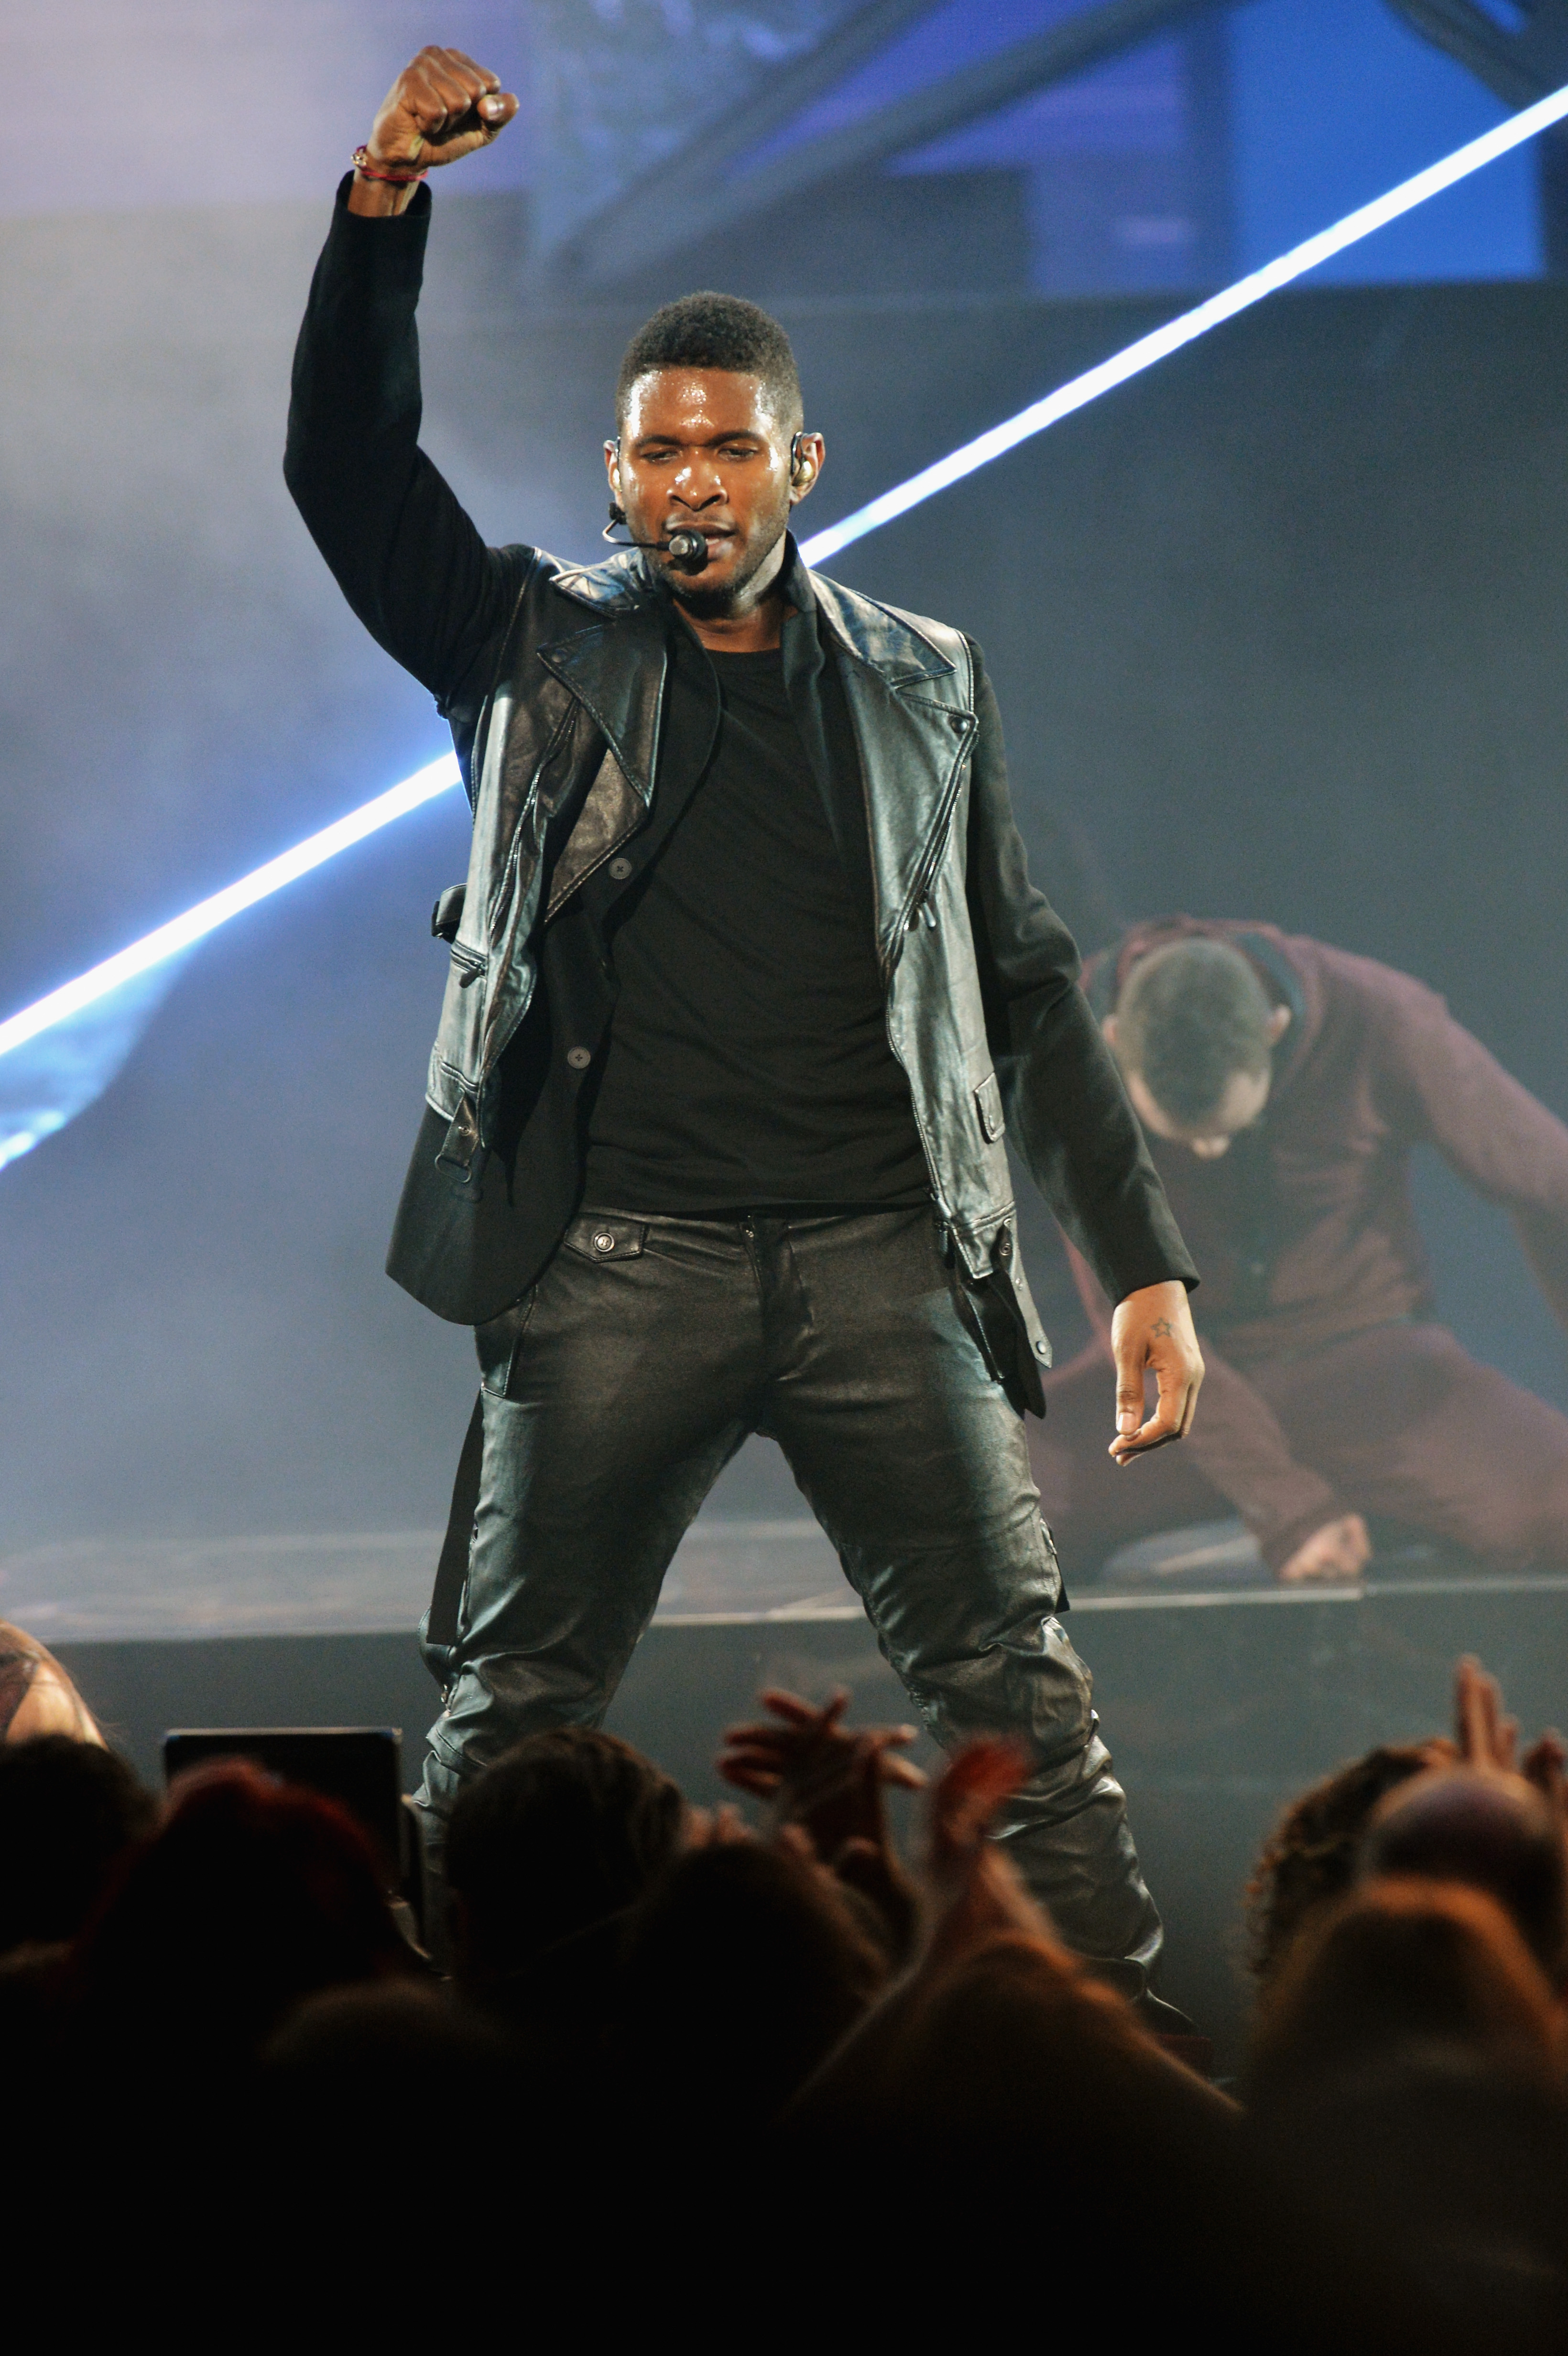 Usher was on stage in LA.